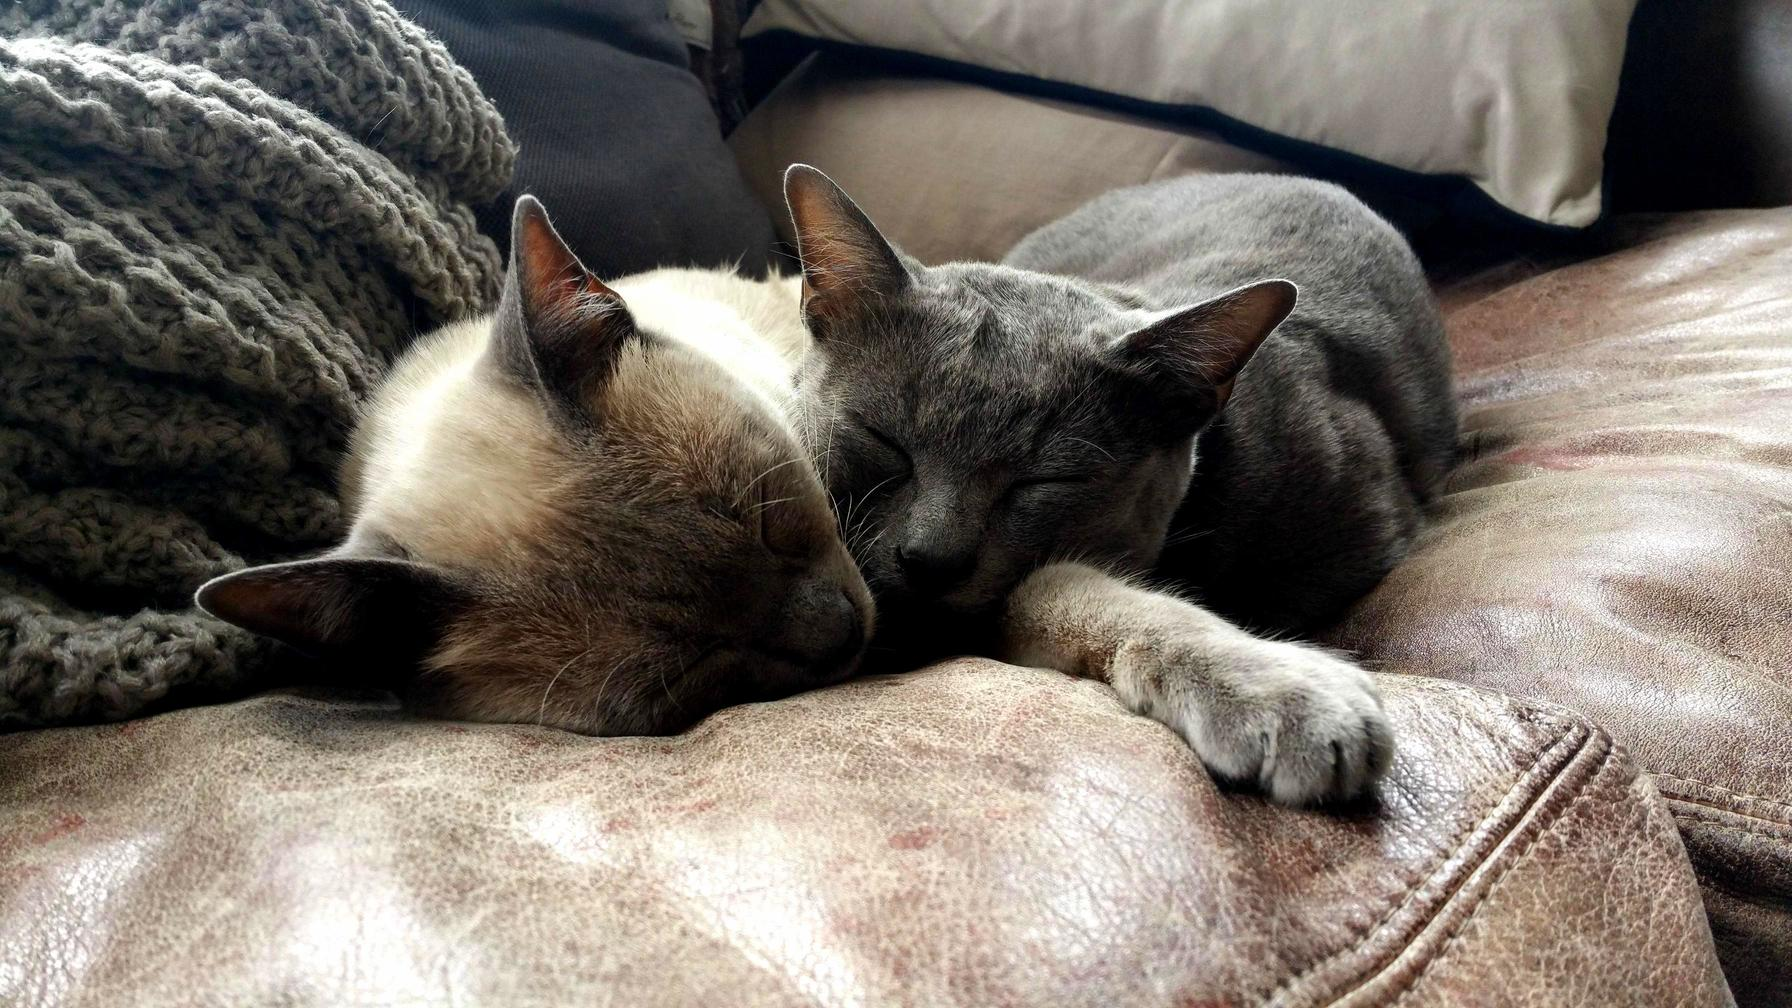 My cats – spaceman and stockwell – are the best of friends